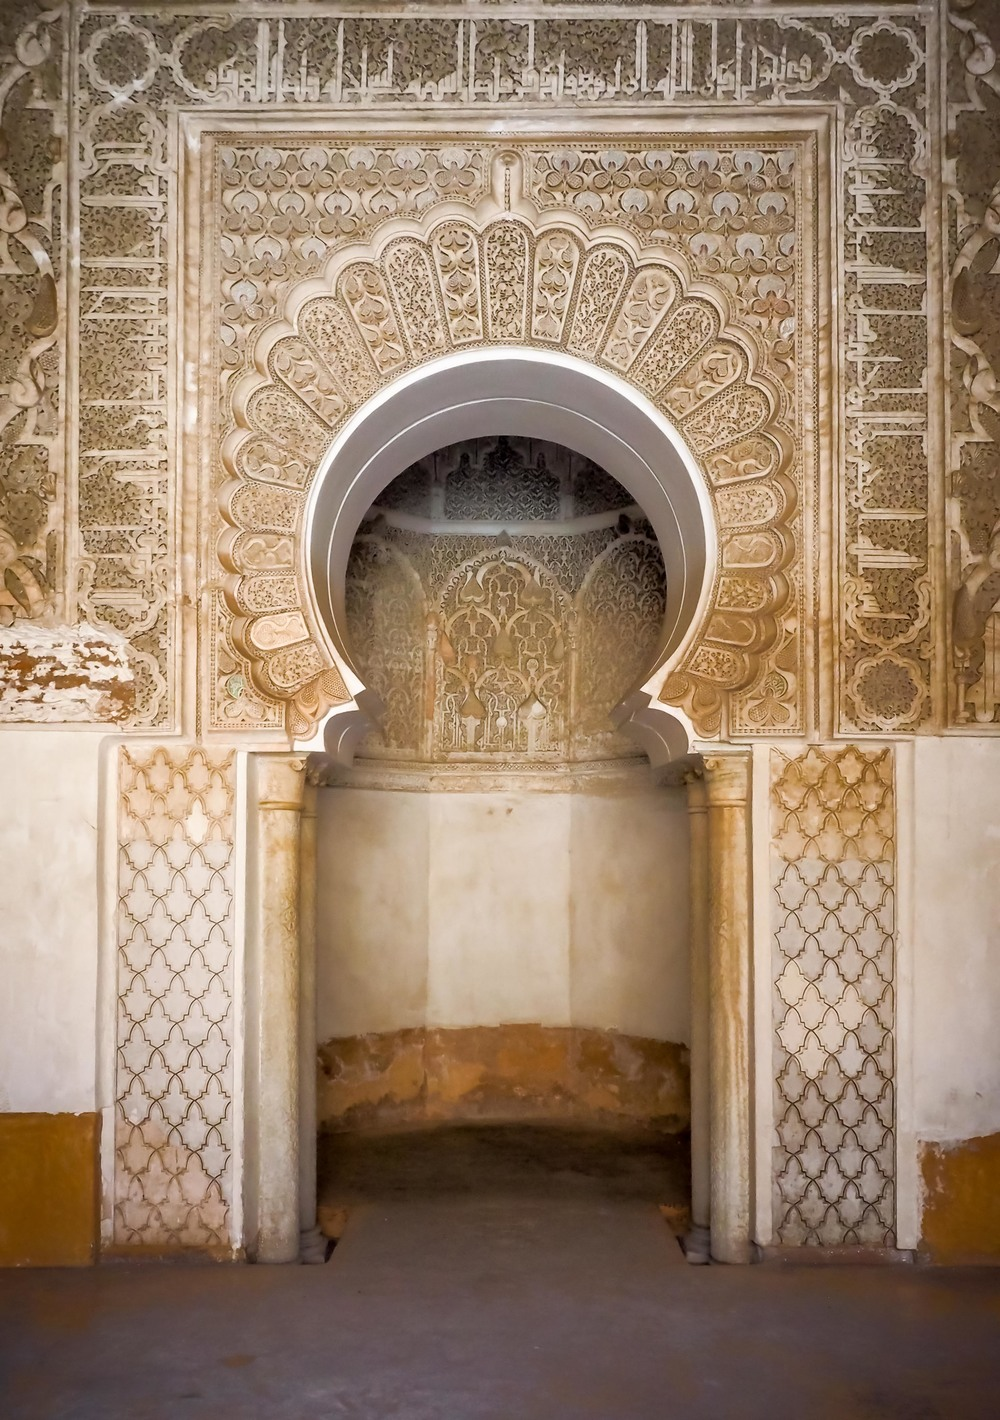 Saadian Tombs.  At least I think it's the tombs.  If you recognize it and it's not, let me know.